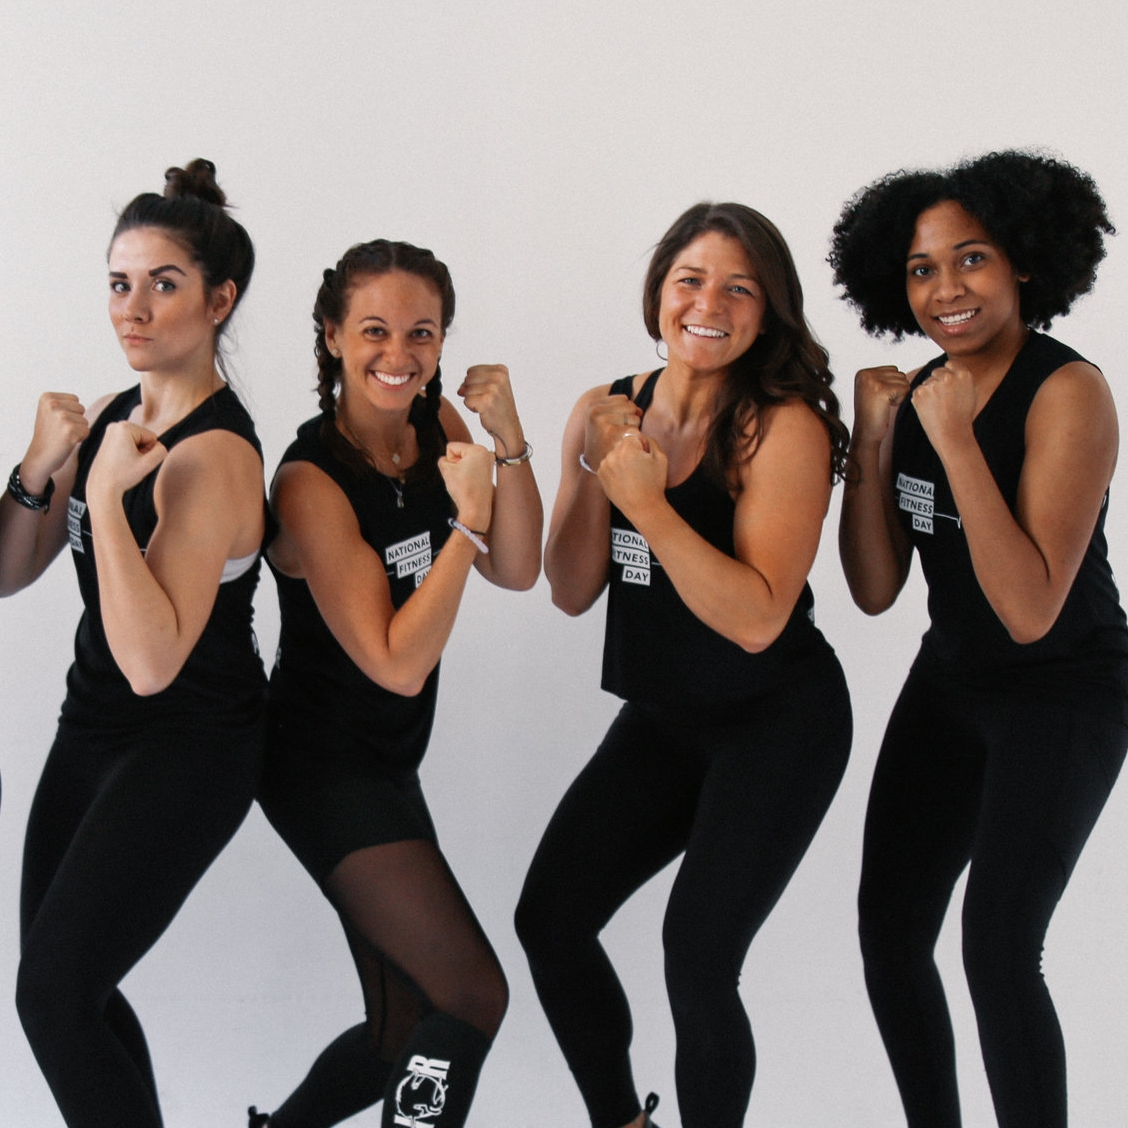 PRESS RELEASE: Get Your Sweat on for the Second Annual National Fitness Day - PRESS RELEASE